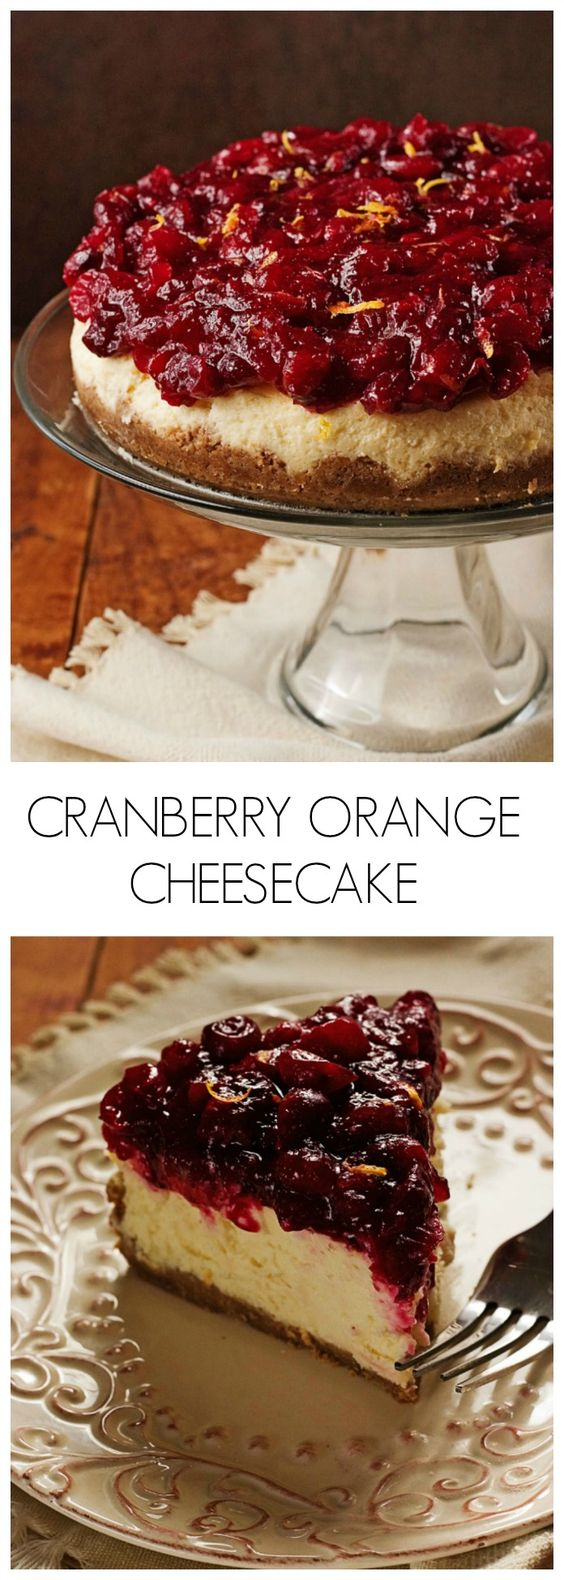 Cheesecake - sweet and creamy orange cheesecake with cranberry sauce ...